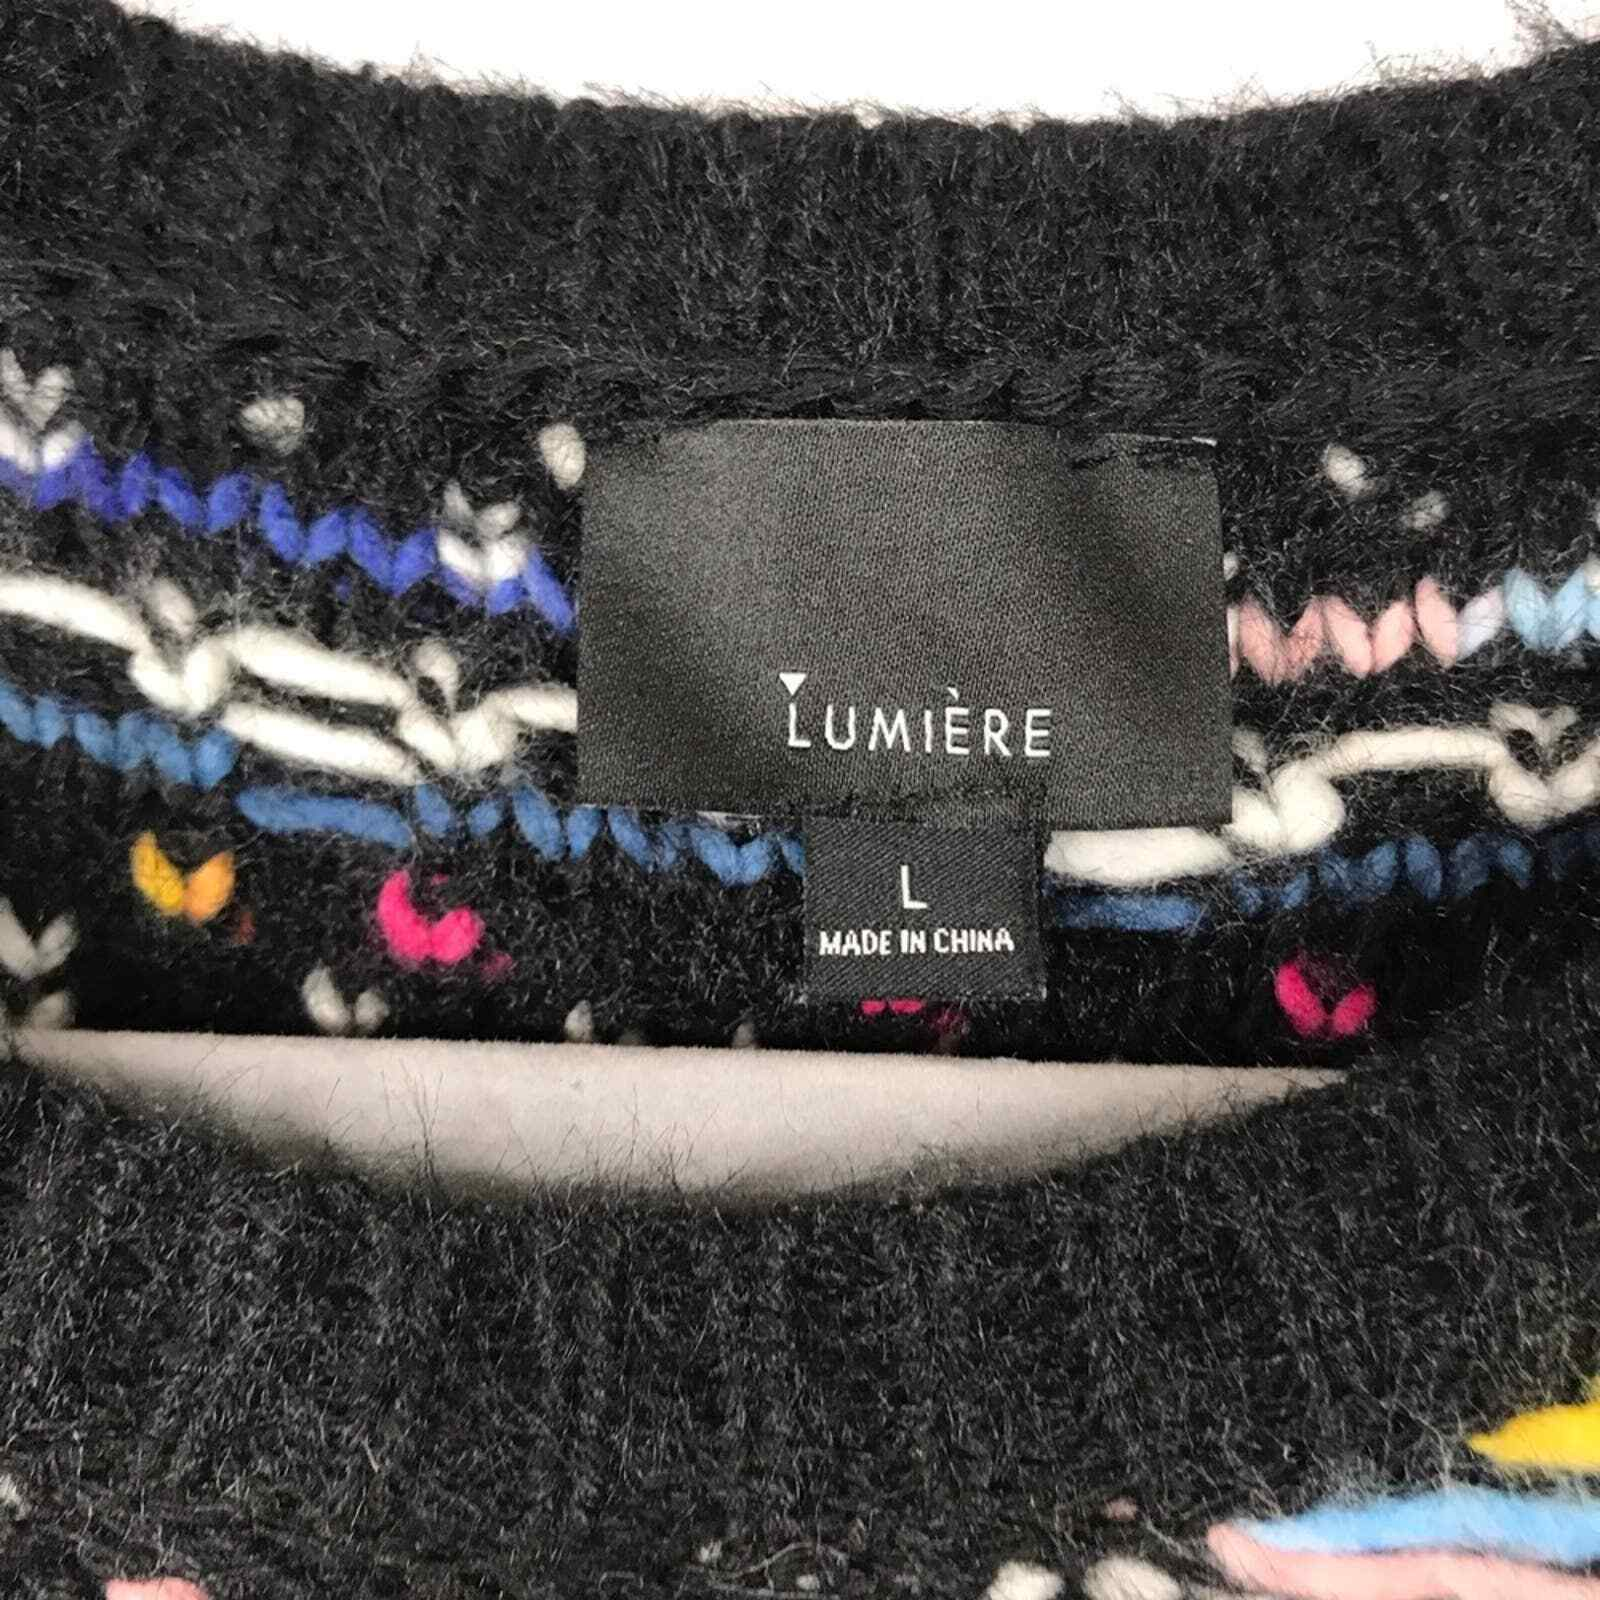 Lumiere multicolored textured knit sweater - image 8